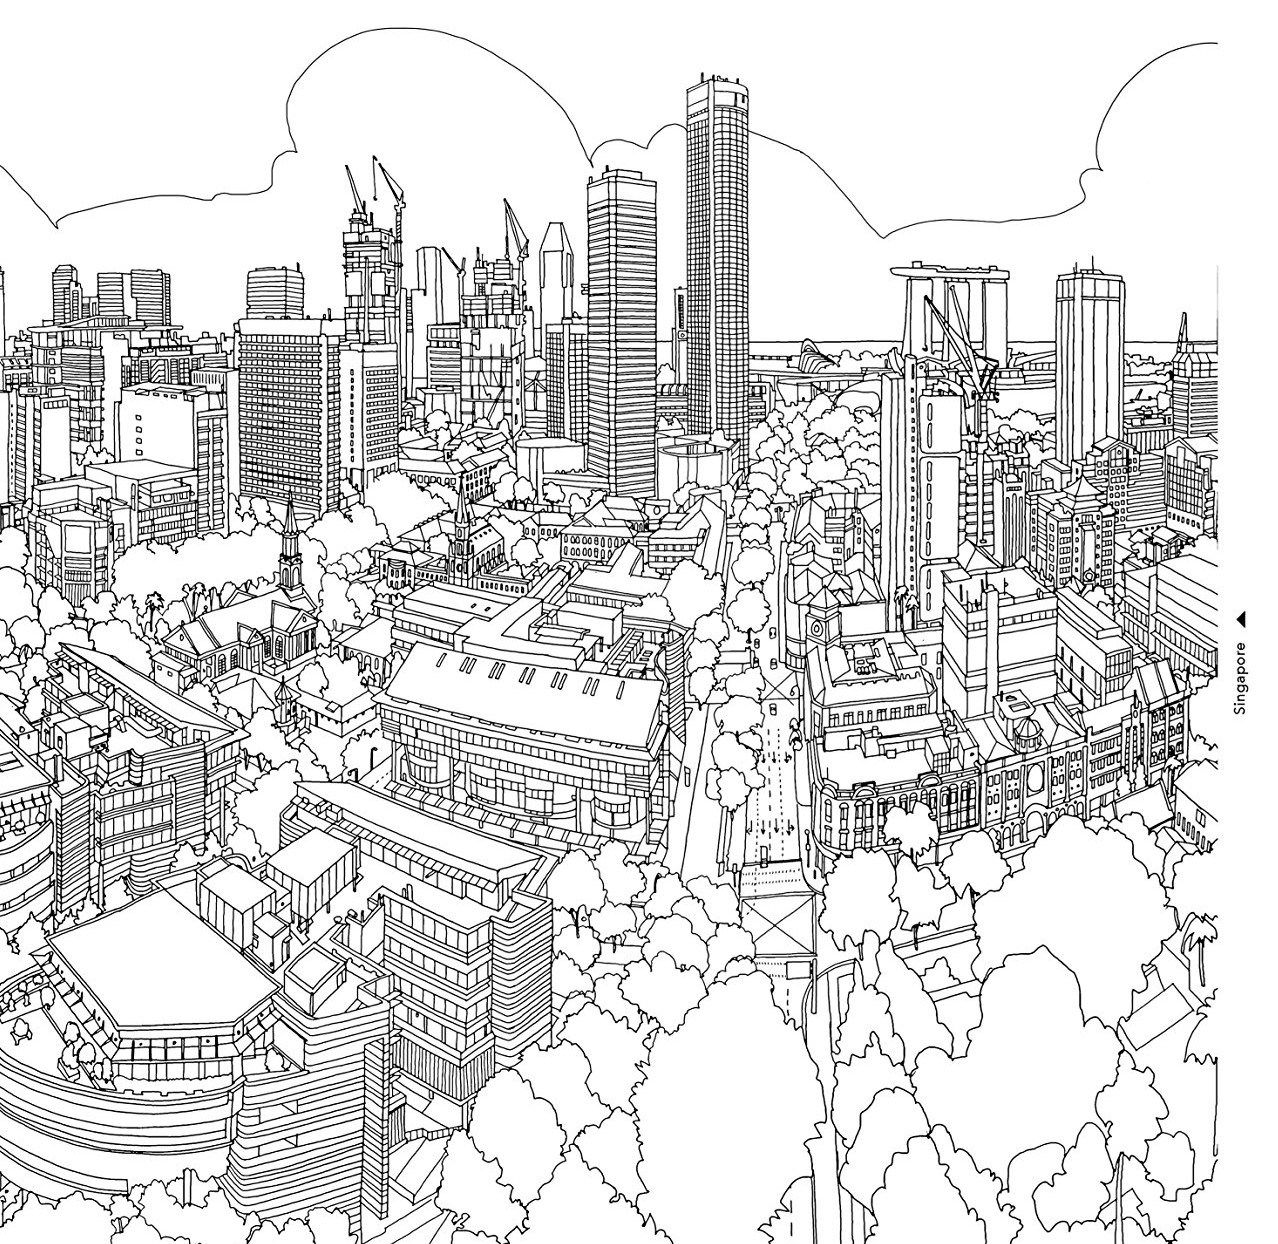 Coloring Books. Architecture Coloring Book - Coloring Books and ...